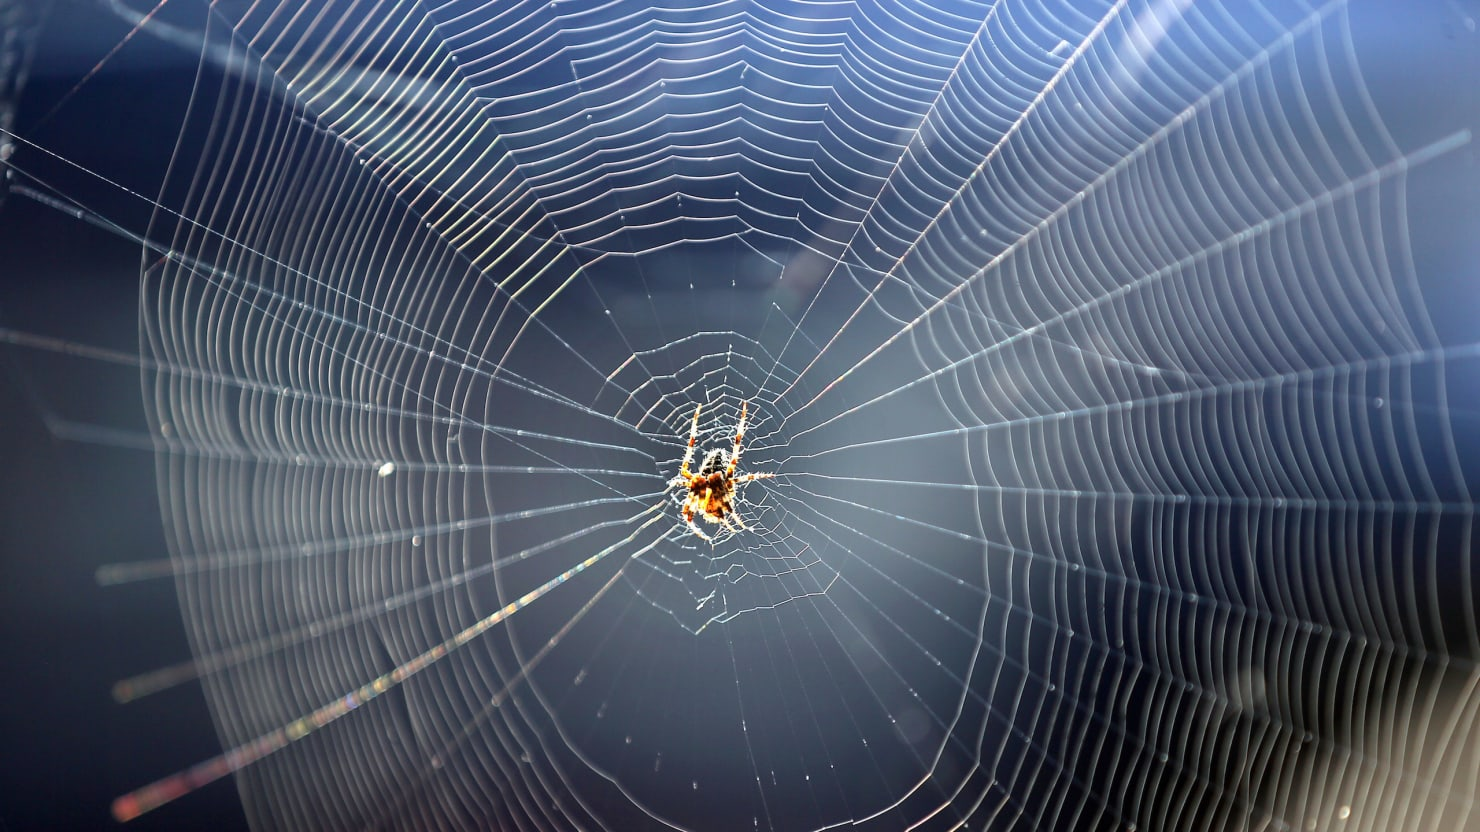 The Man-Made Spider Webs Created By Scientists